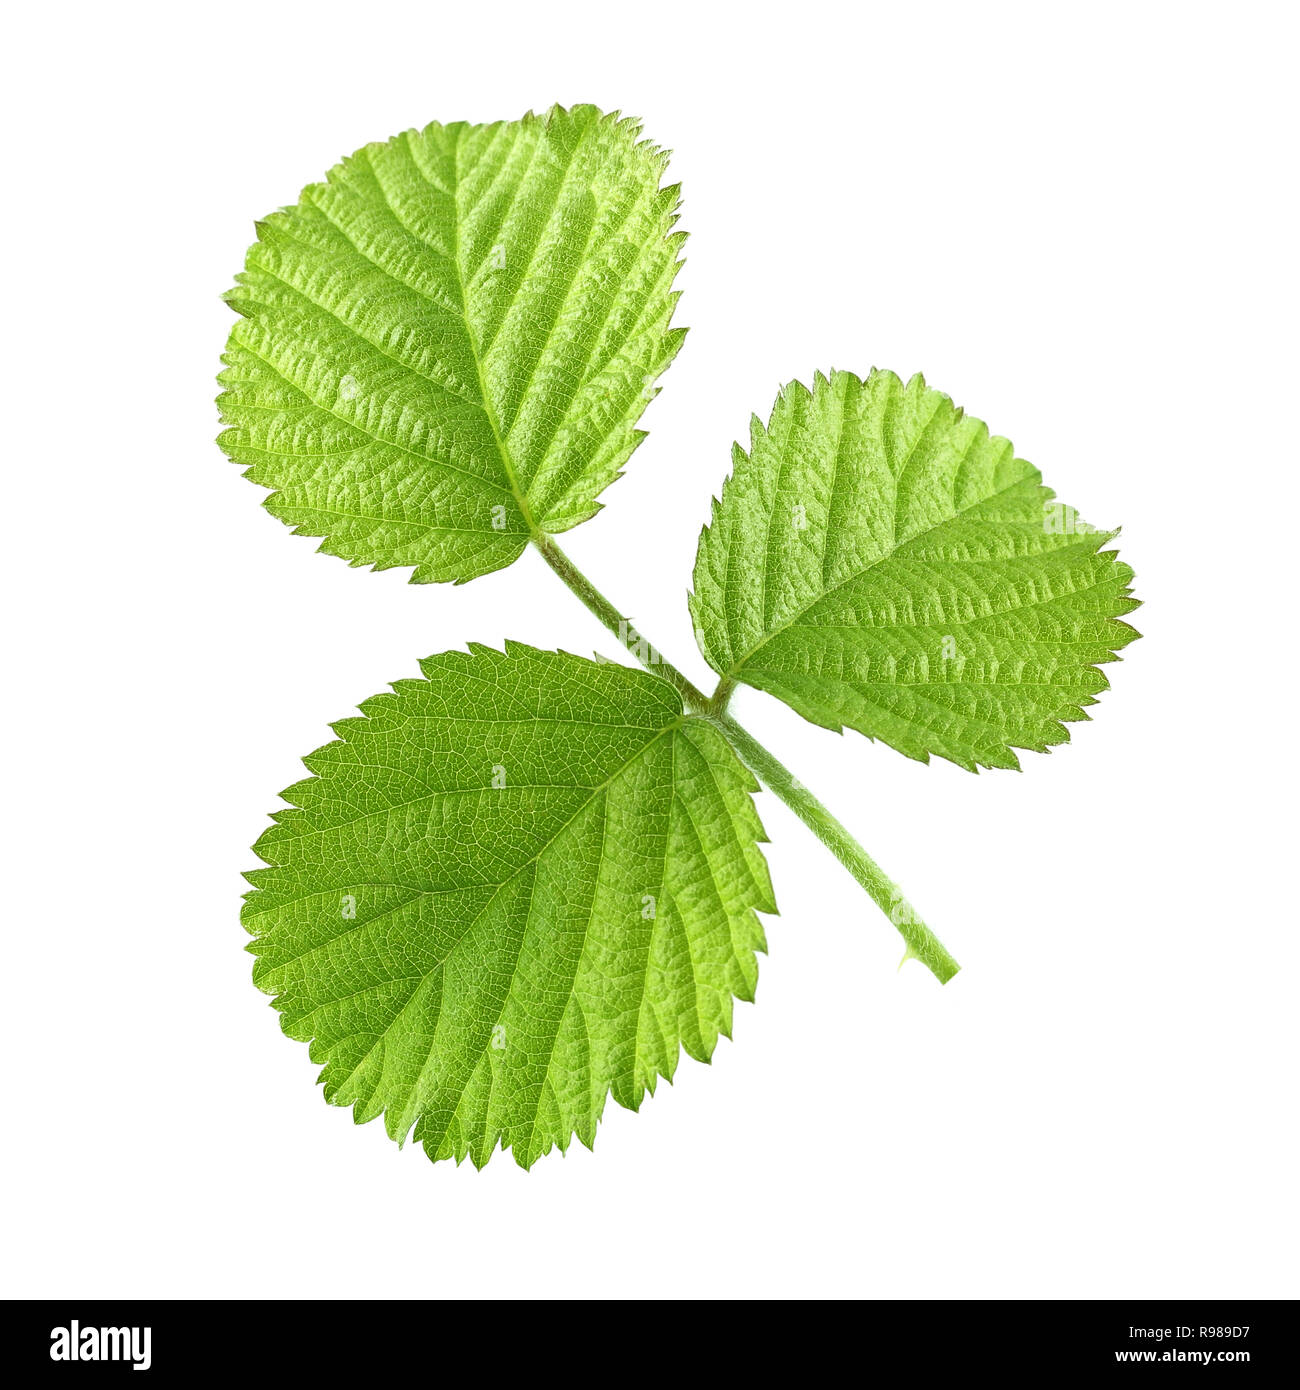 Pictures Of Blackberry Leaves